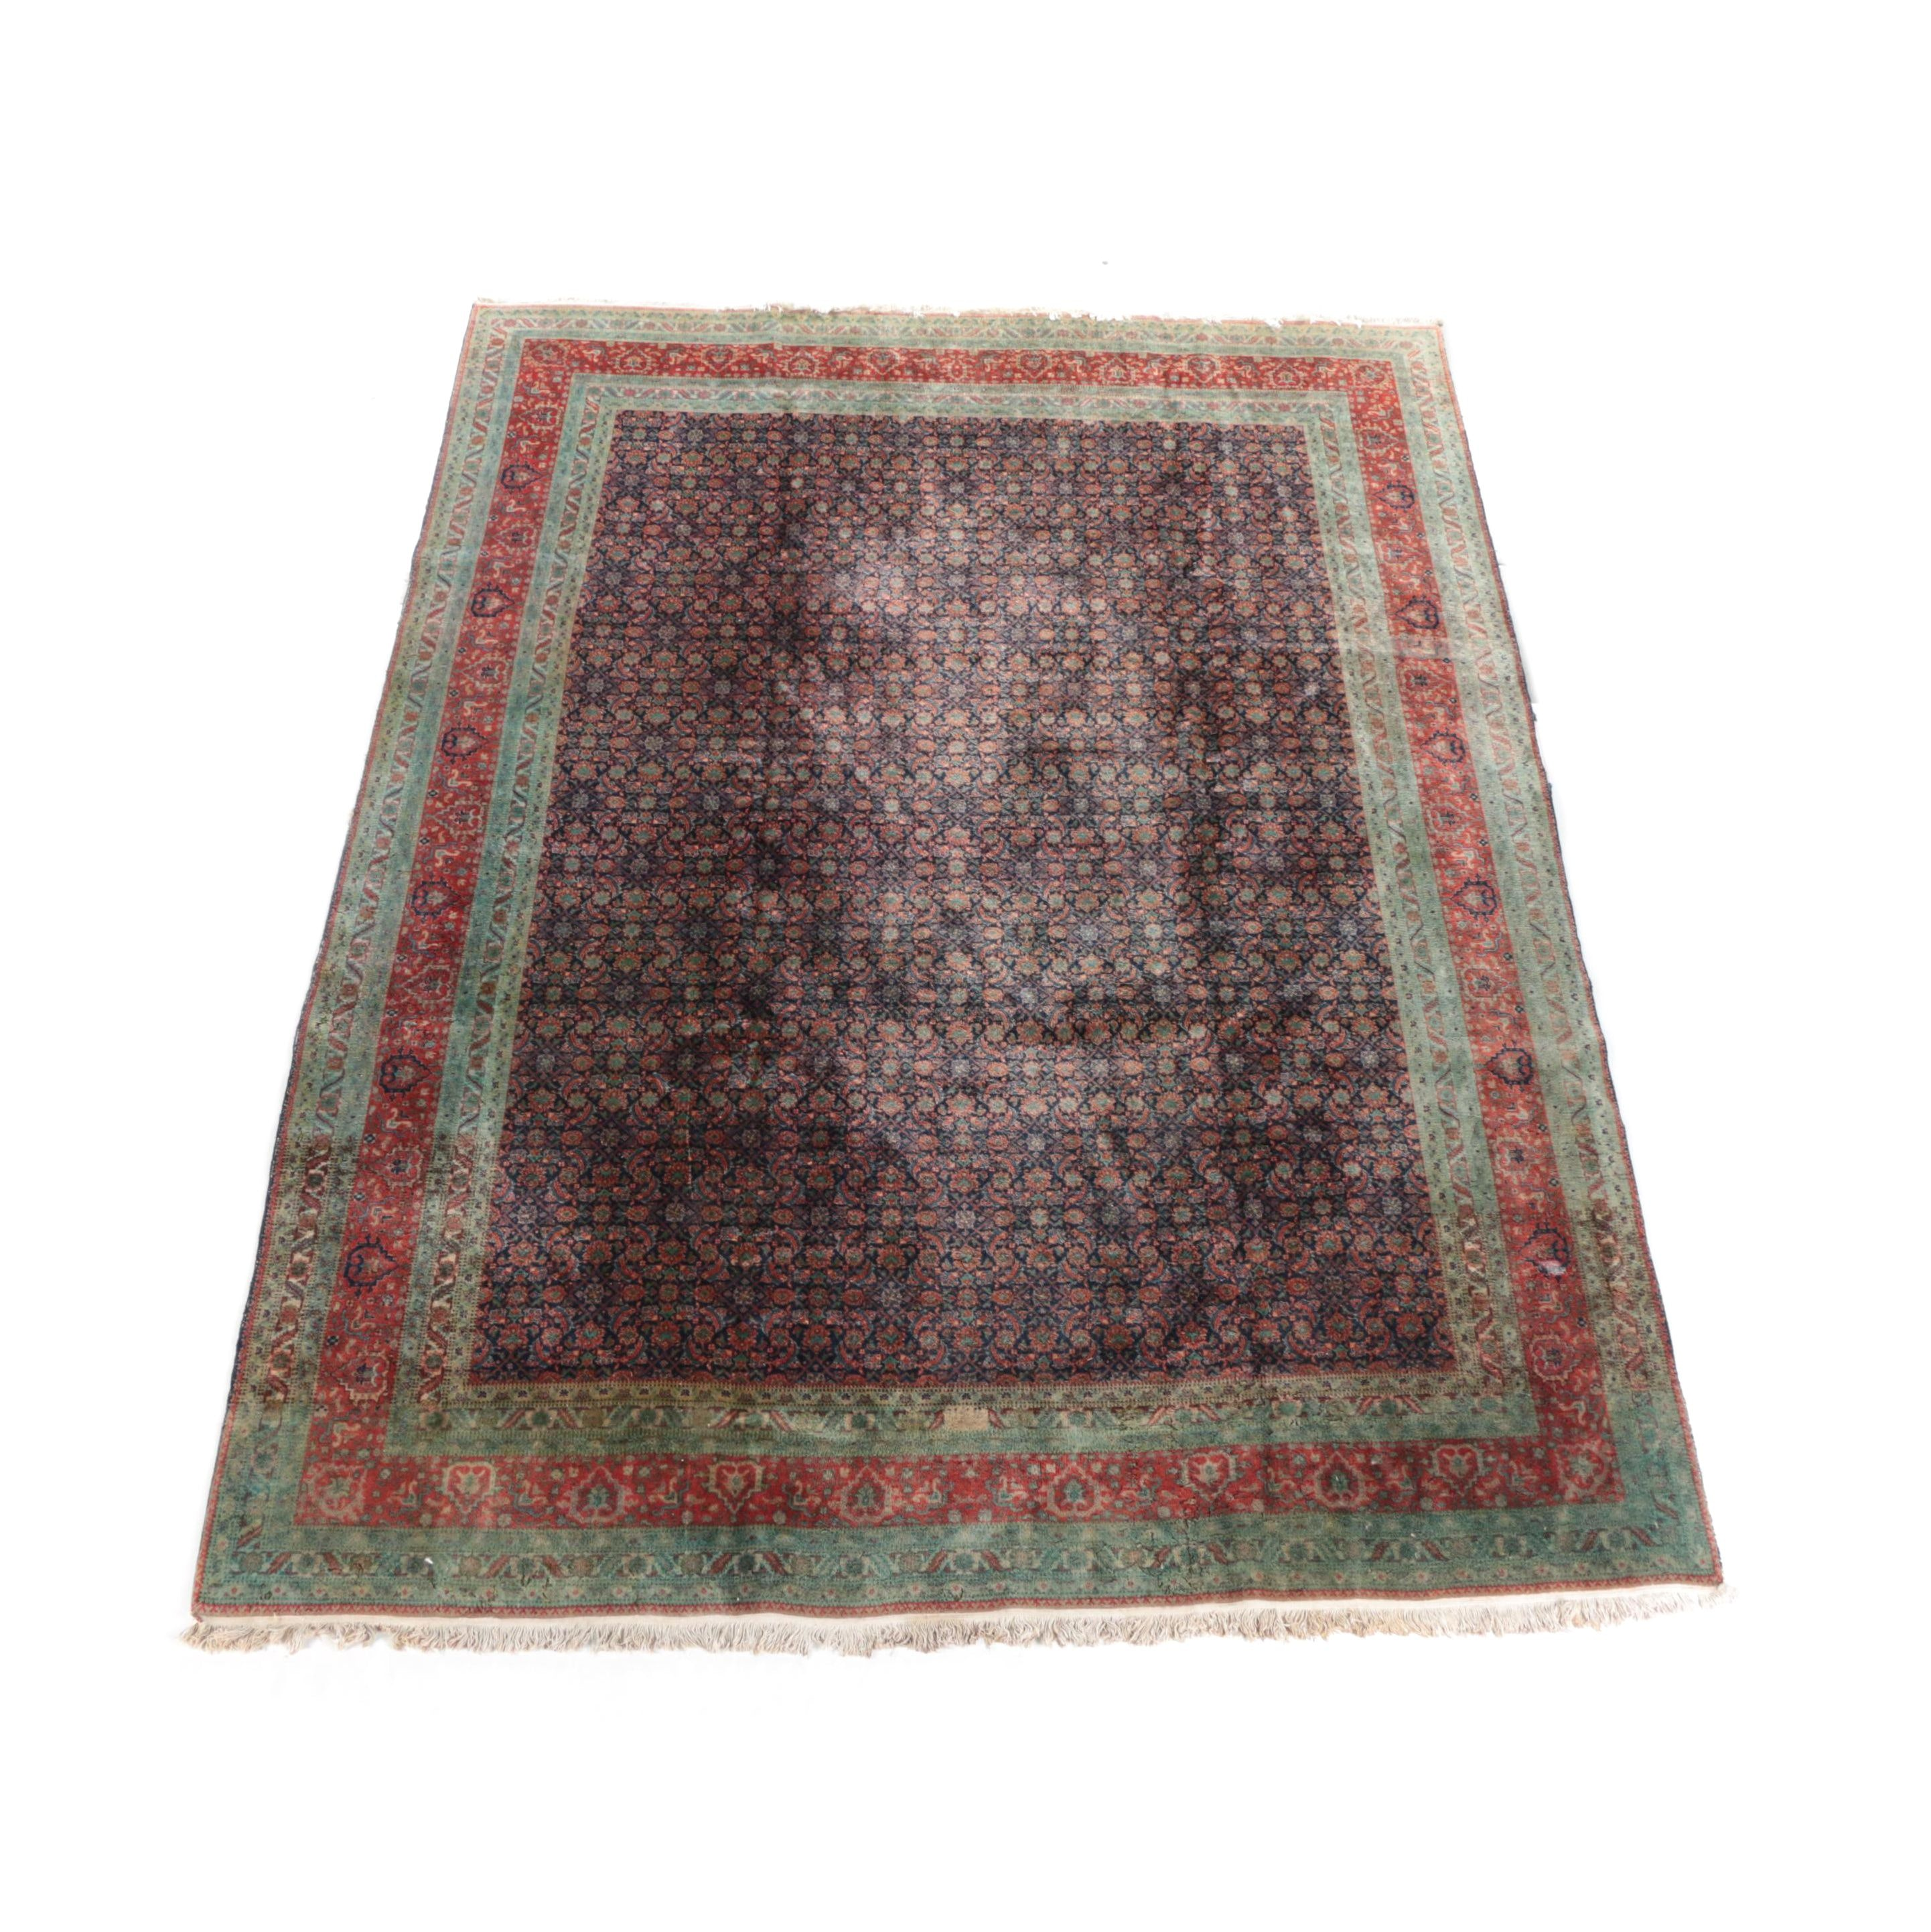 Vintage Hand-Knotted Bijar Style  Painted Wool Area Rug